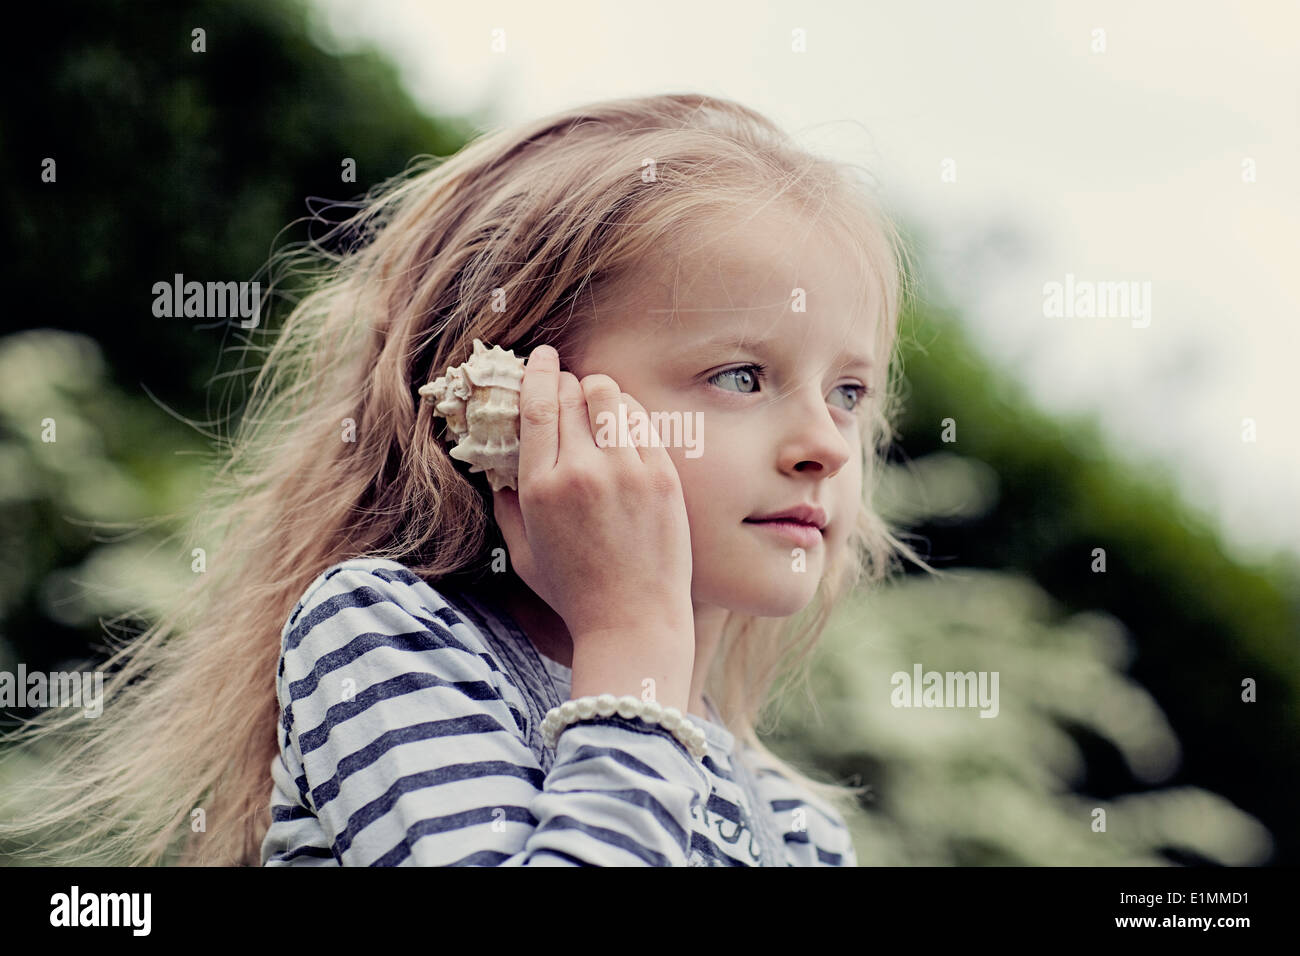 Child listening to the sounds of a seashell. Stock Photo